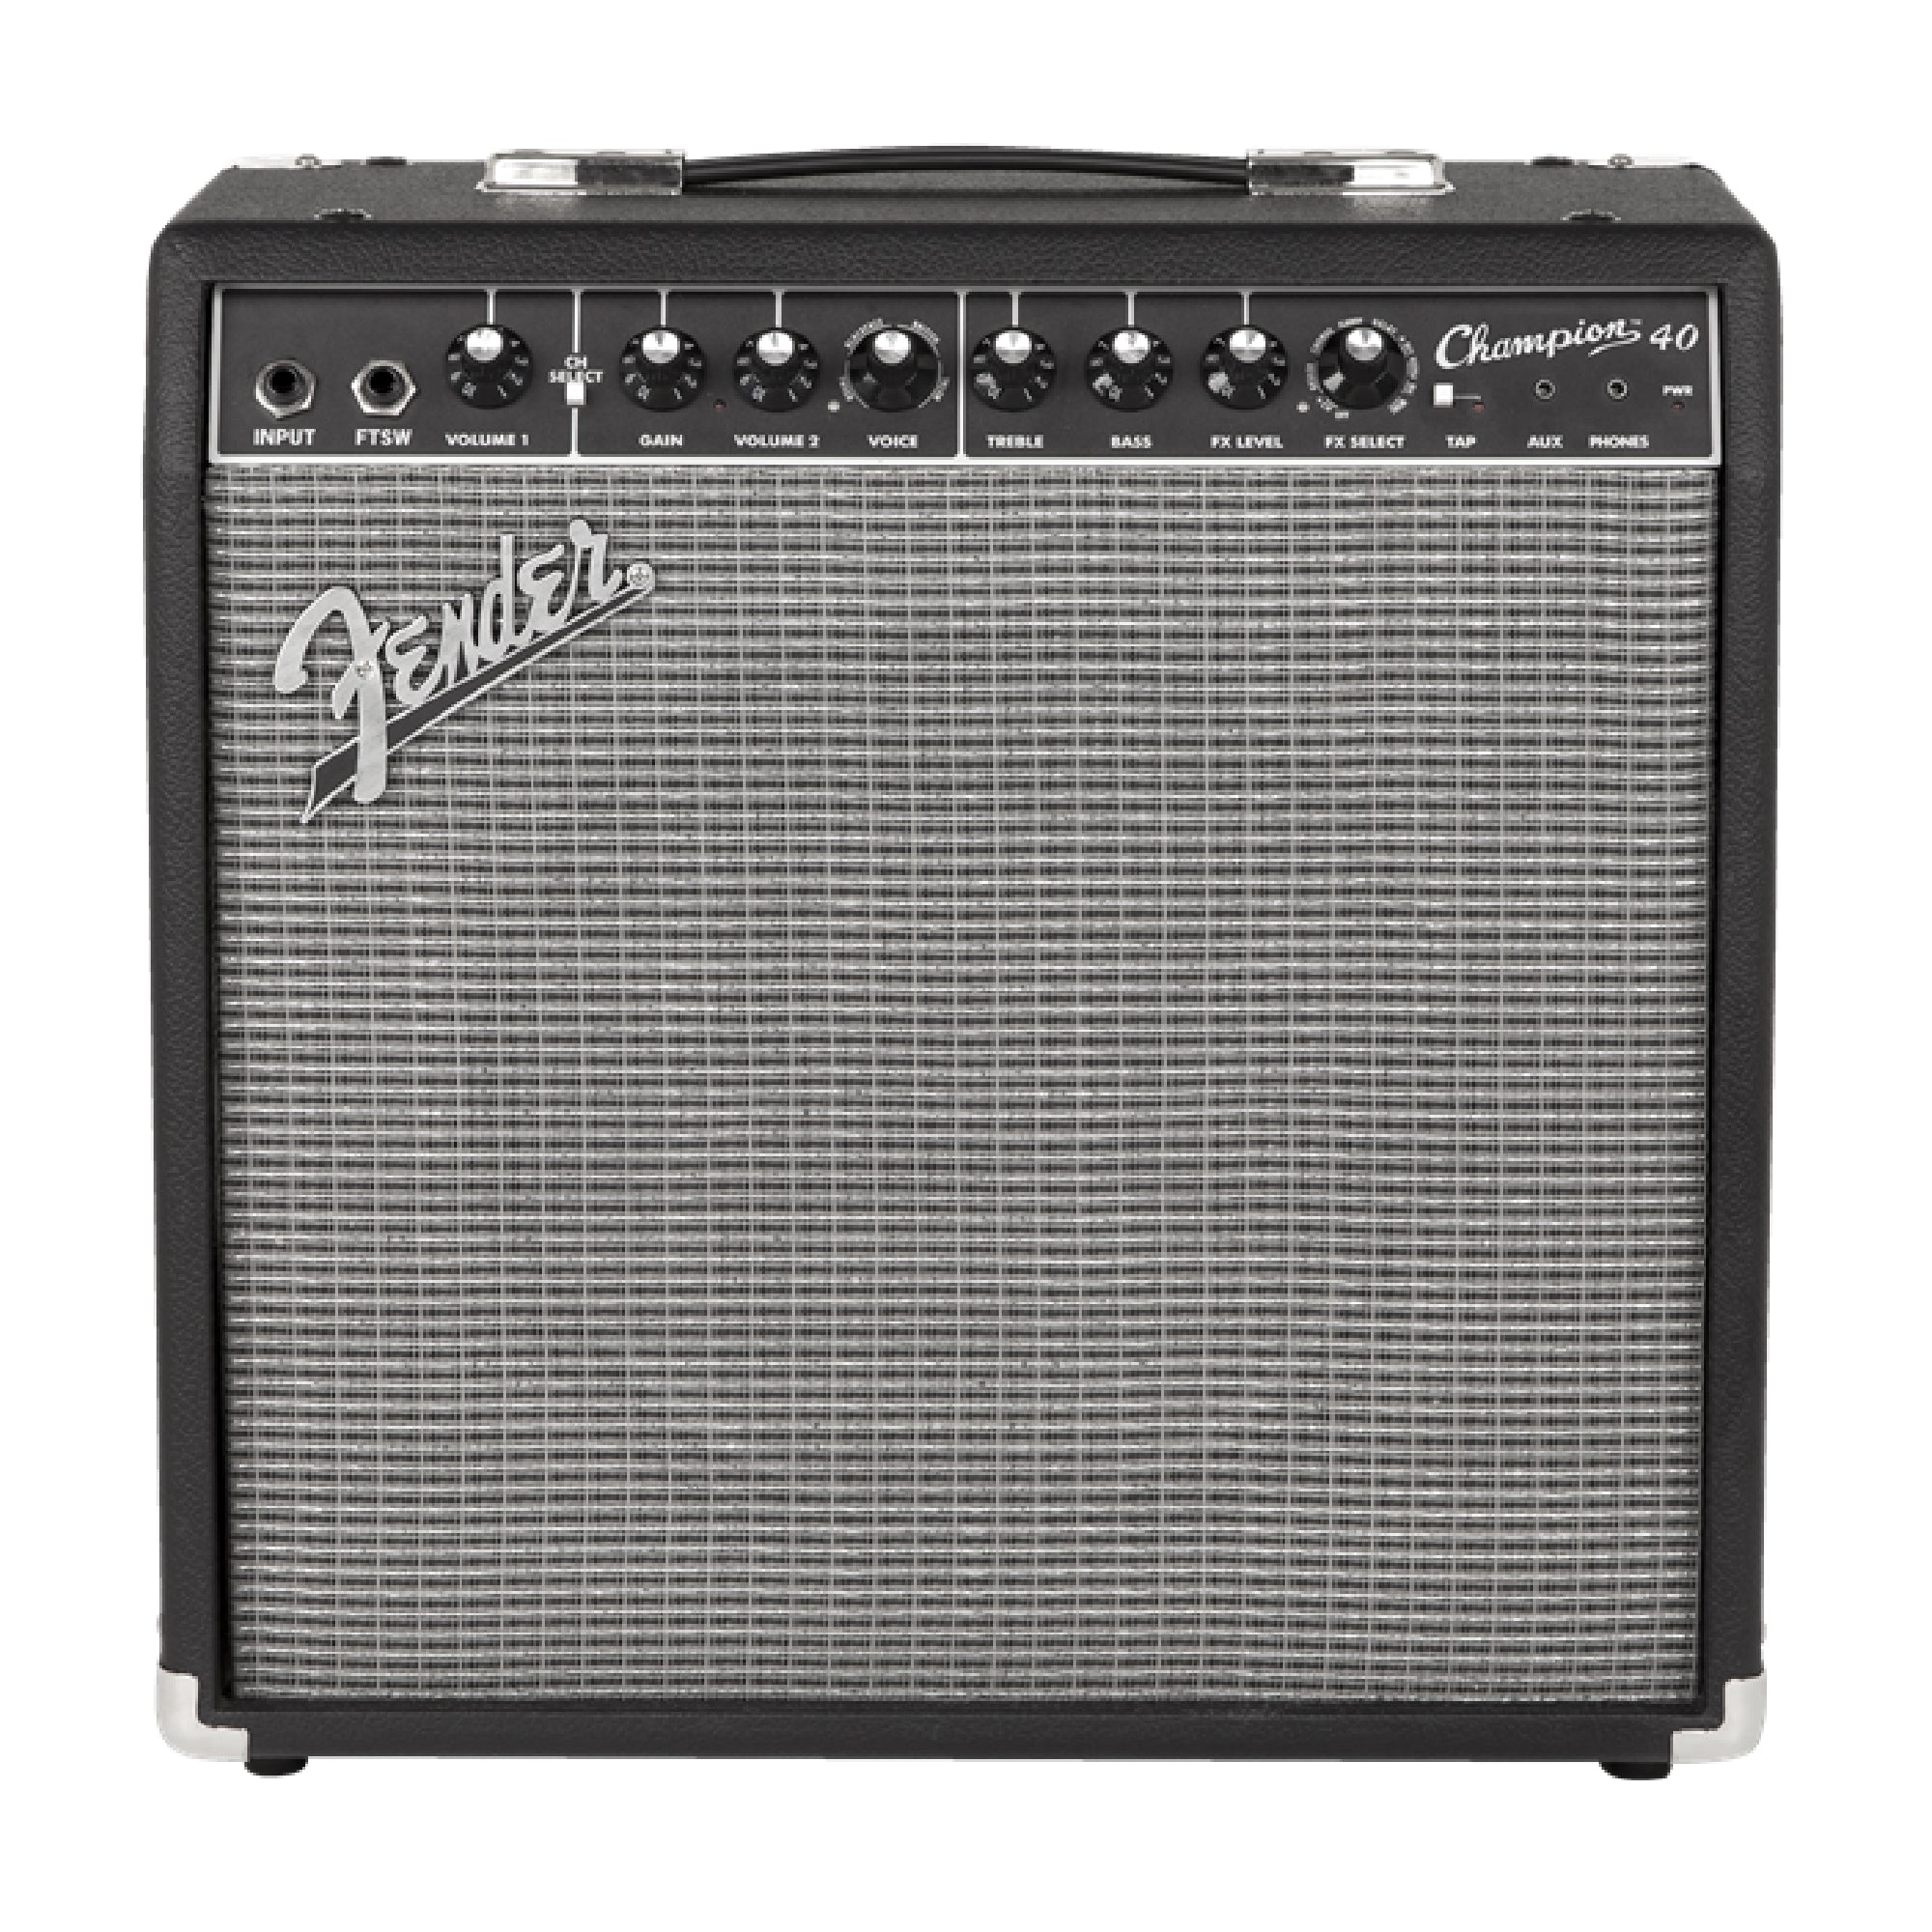 AMPLIFICADOR-GUITARRA-CHAMPION™-40-FENDER-1